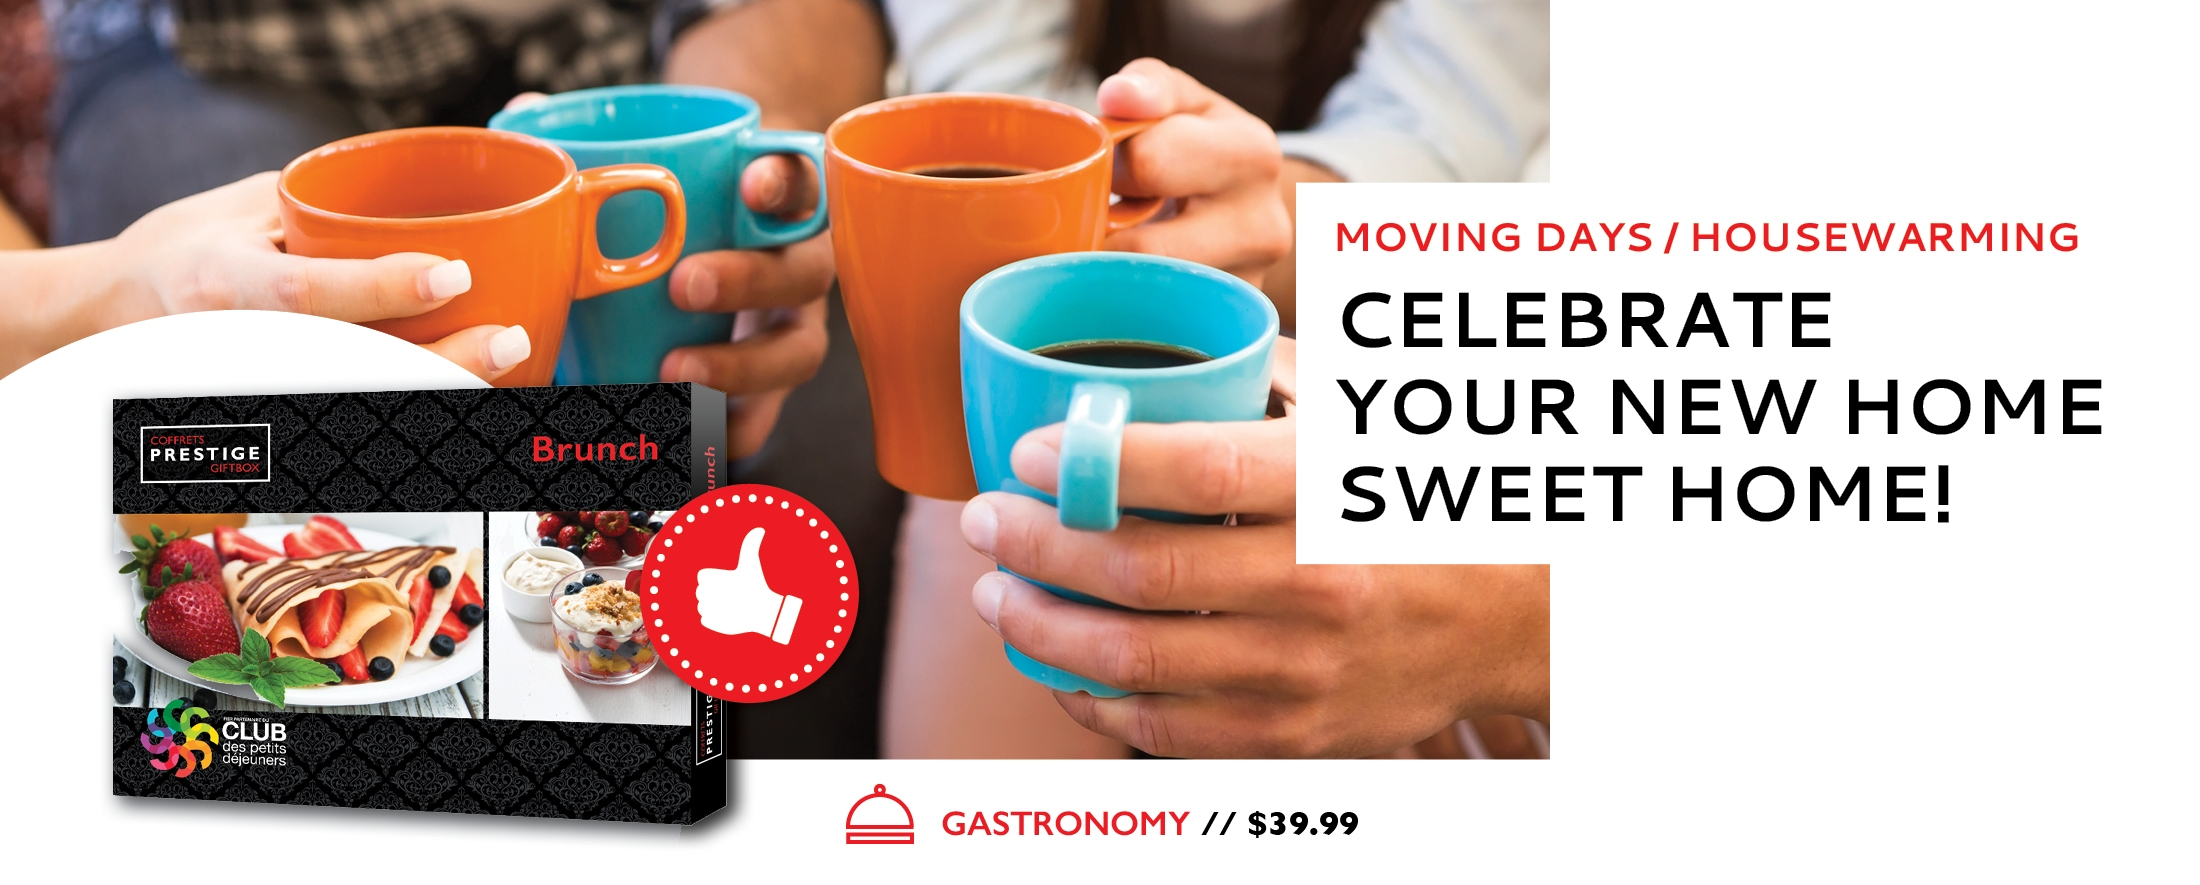 Celebrate Your New Home Sweet Home!